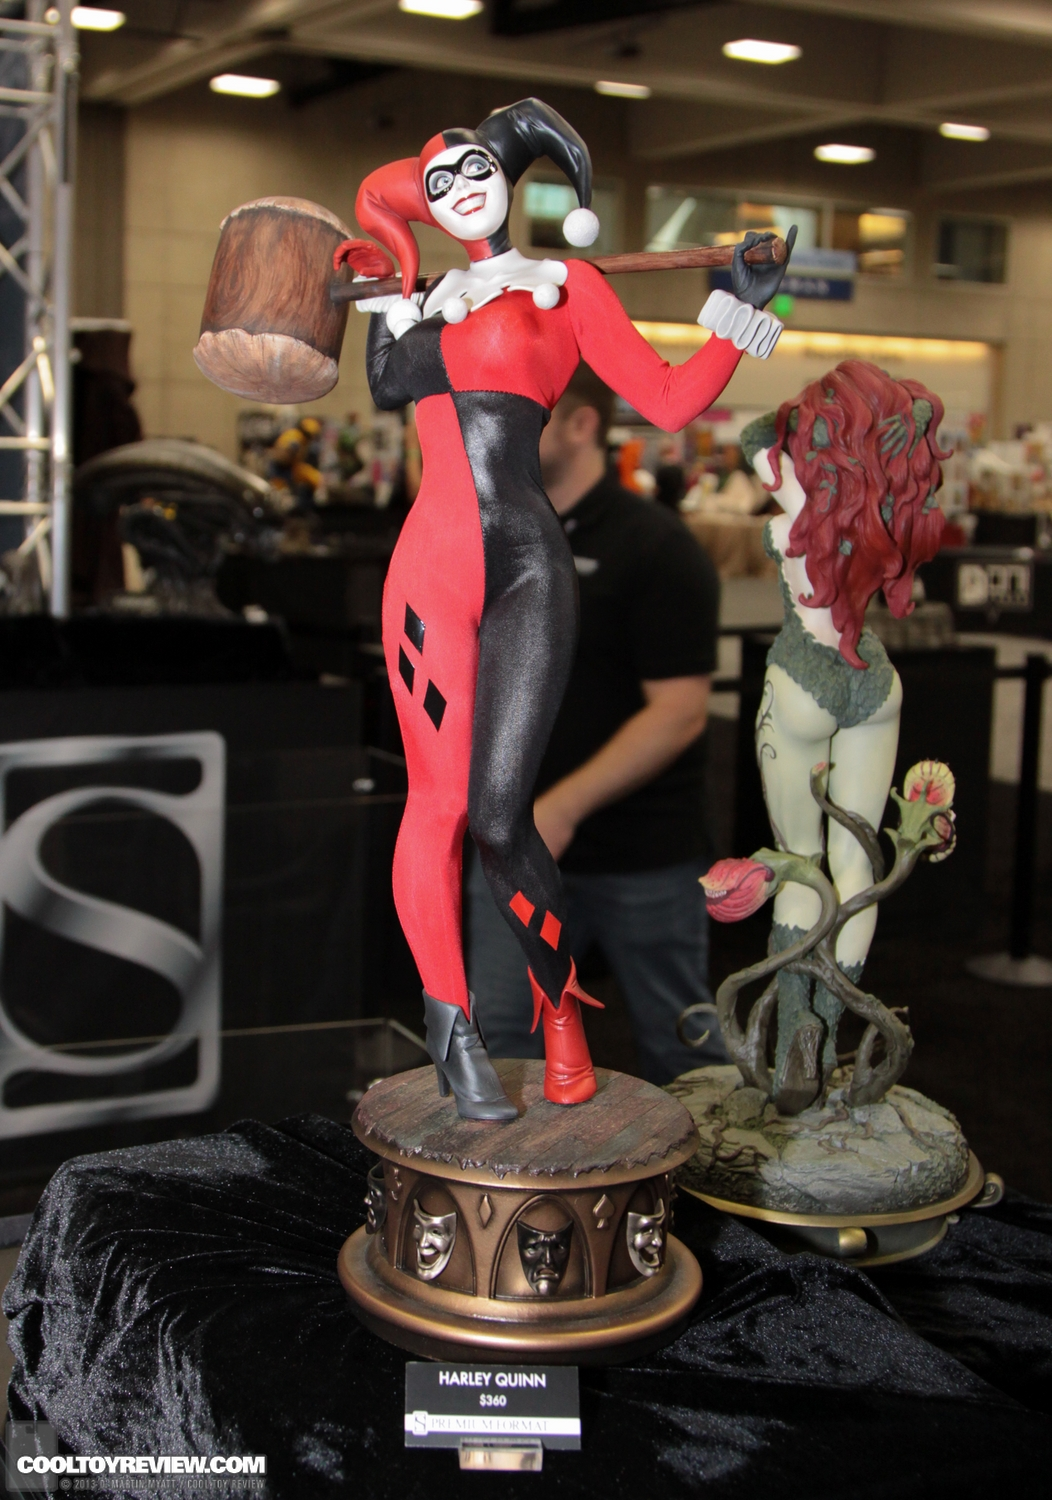 Sideshow Collectibles Harley Quinn